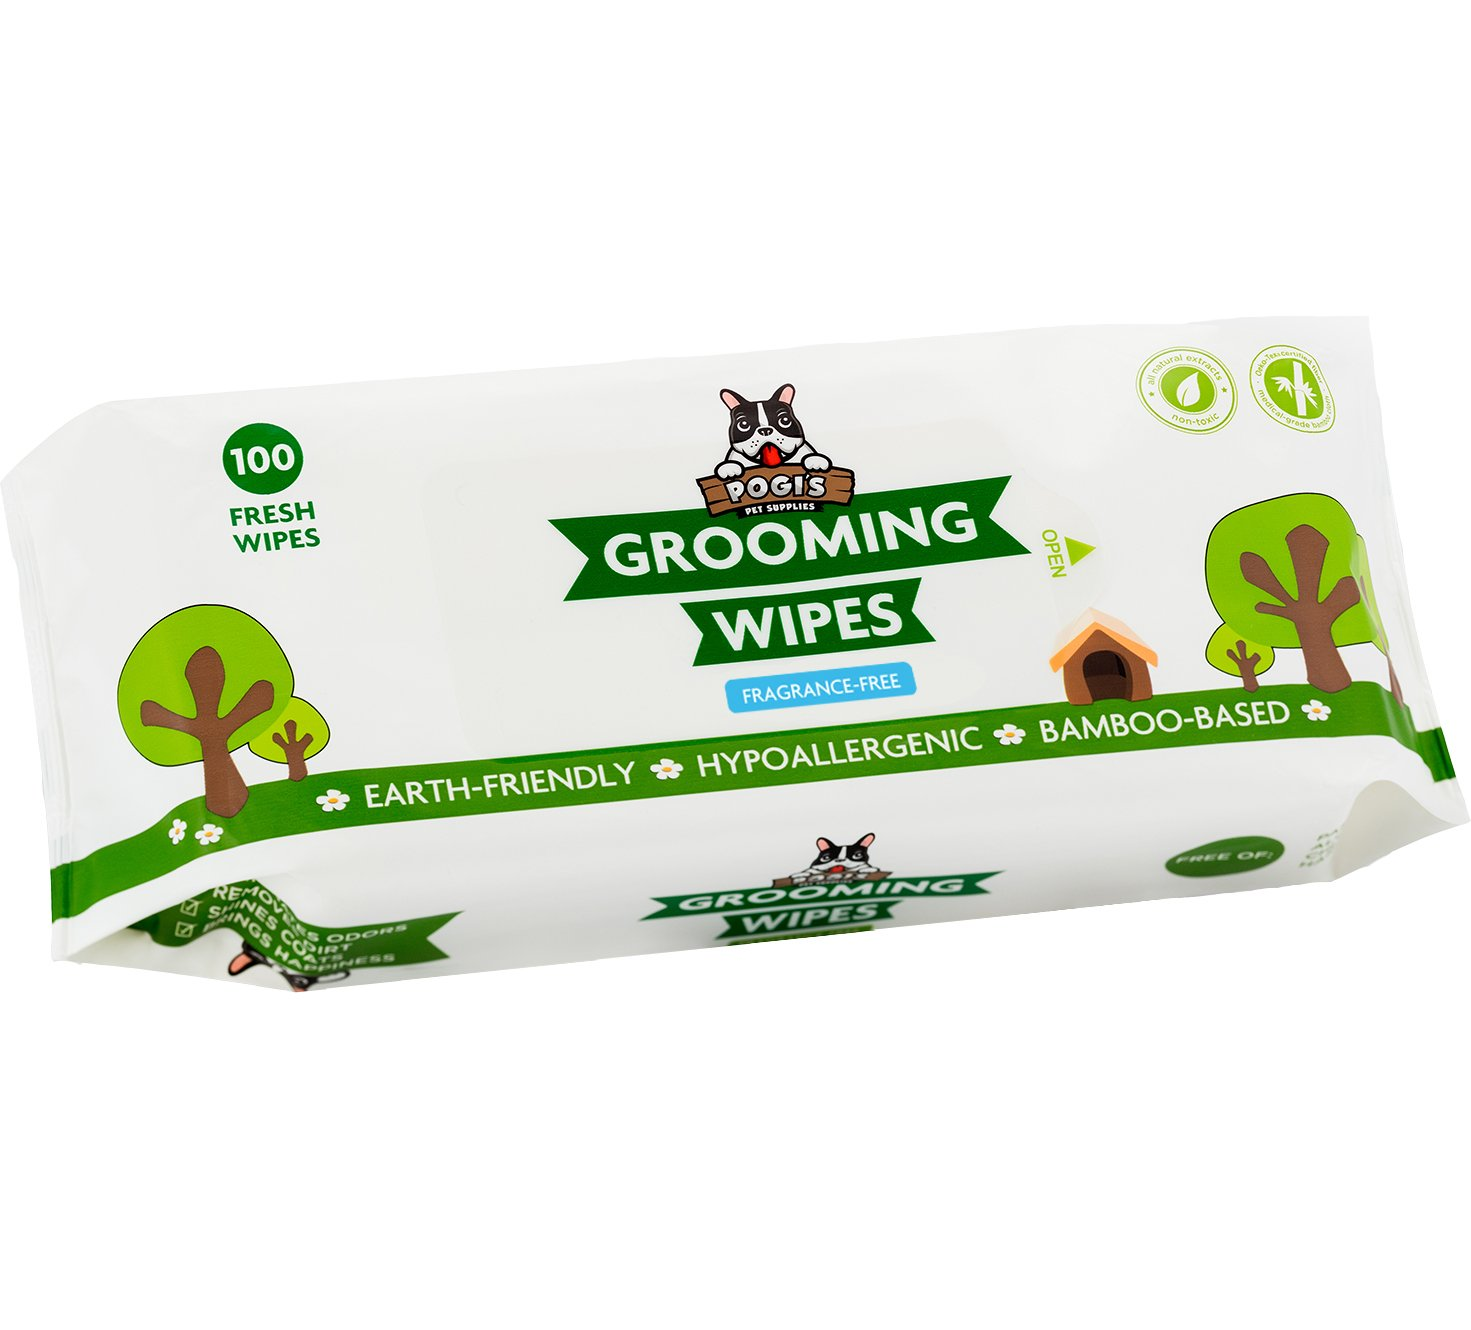 Pogi's Grooming Wipes - 100 Deodorizing Wipes for Dogs & Cats - Large, Hypoallergenic, Fragrance-Free by Pogi's Pet Supplies